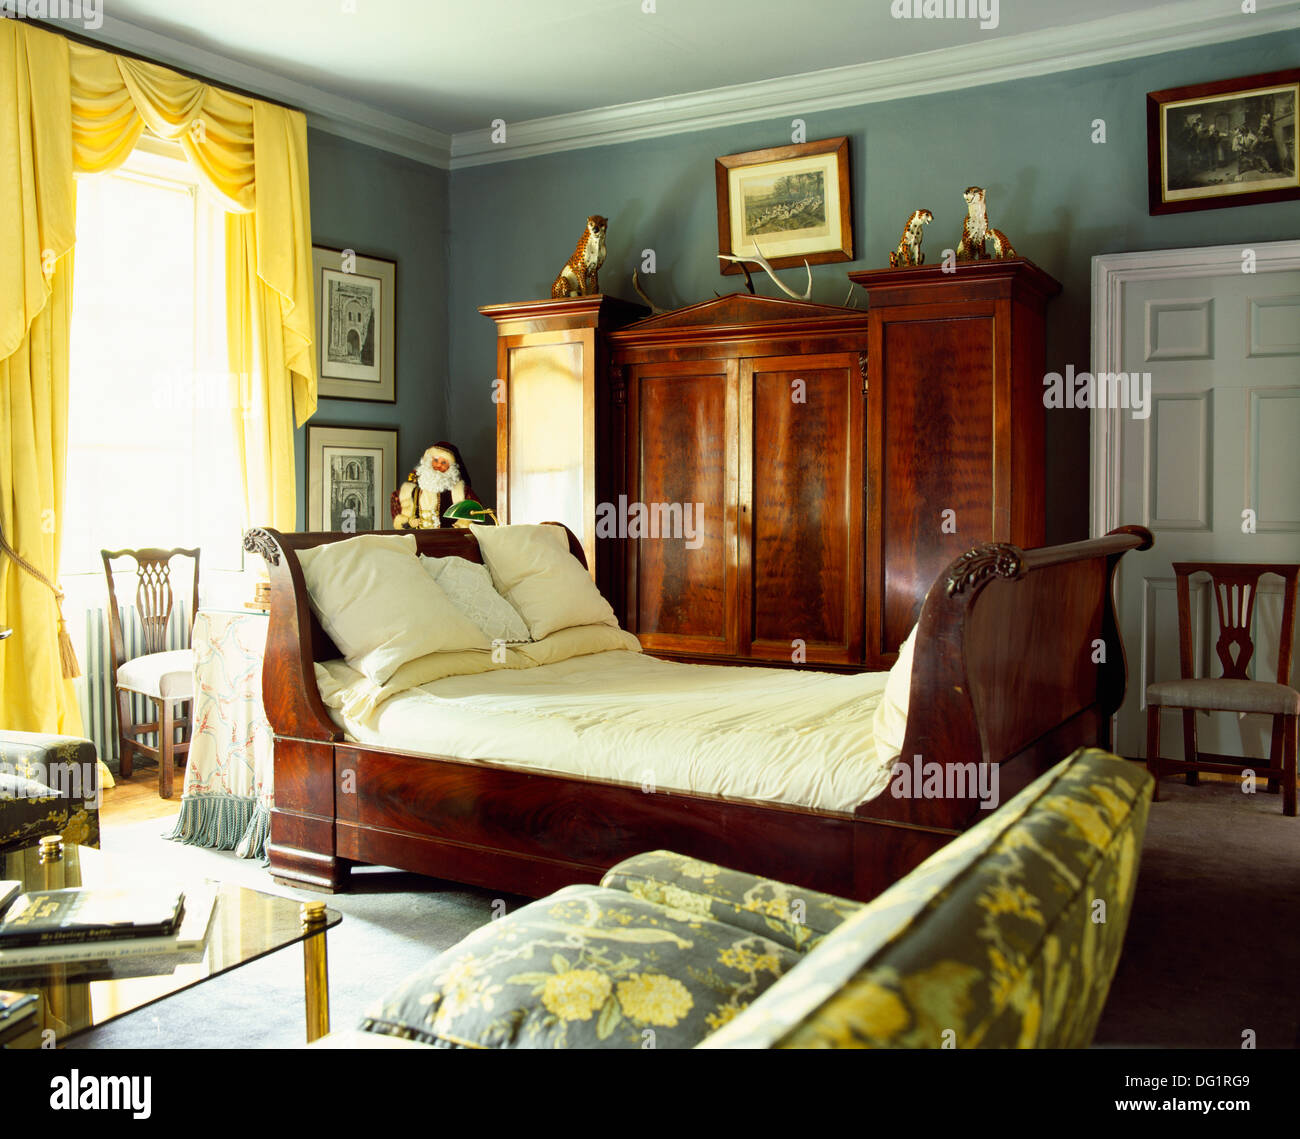 - White Bedlinen On Antique Sleigh Bed In Green-blue Bedroom With